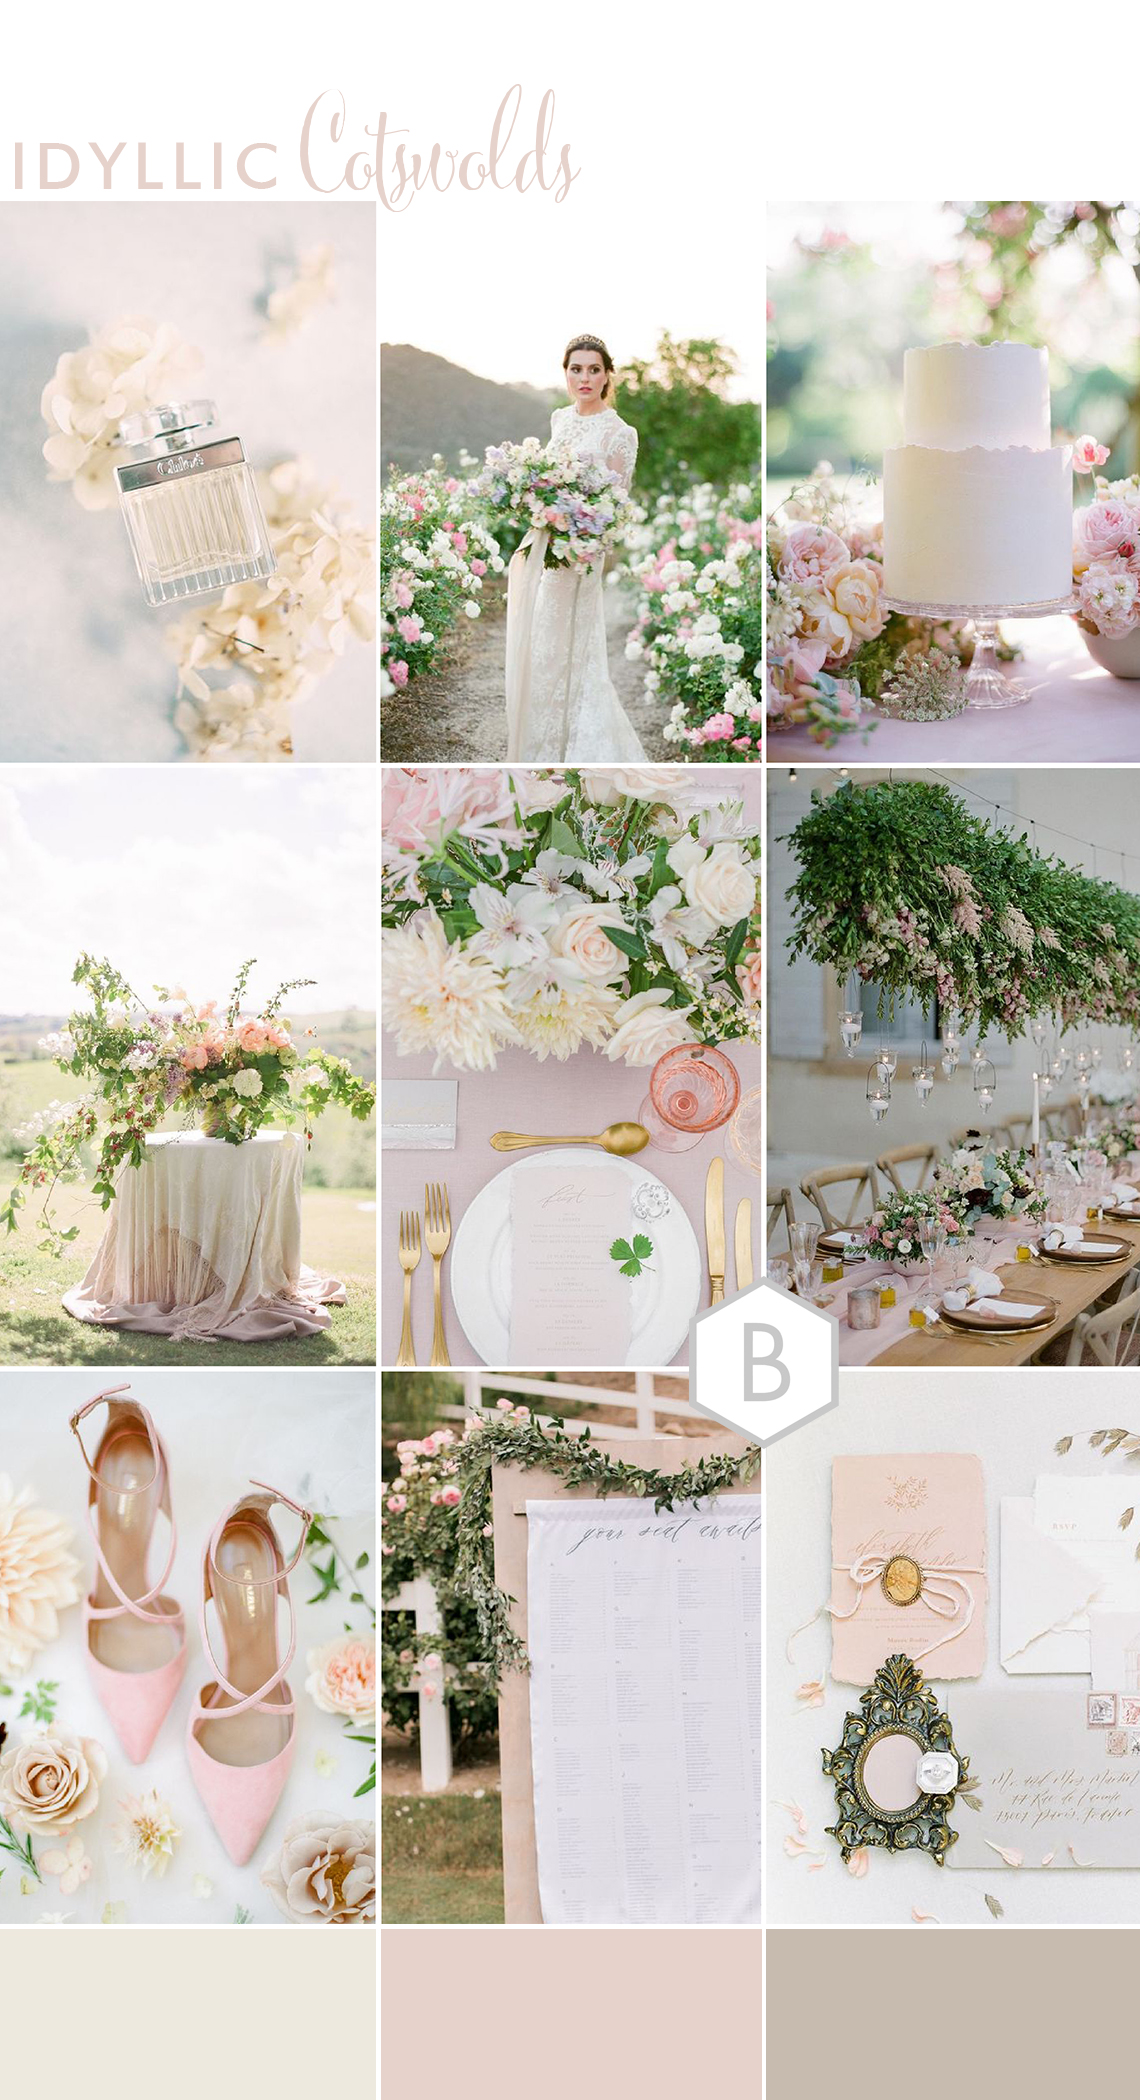 exploring ideas for an idyllic wedding in the cotswolds with a pink colour palette